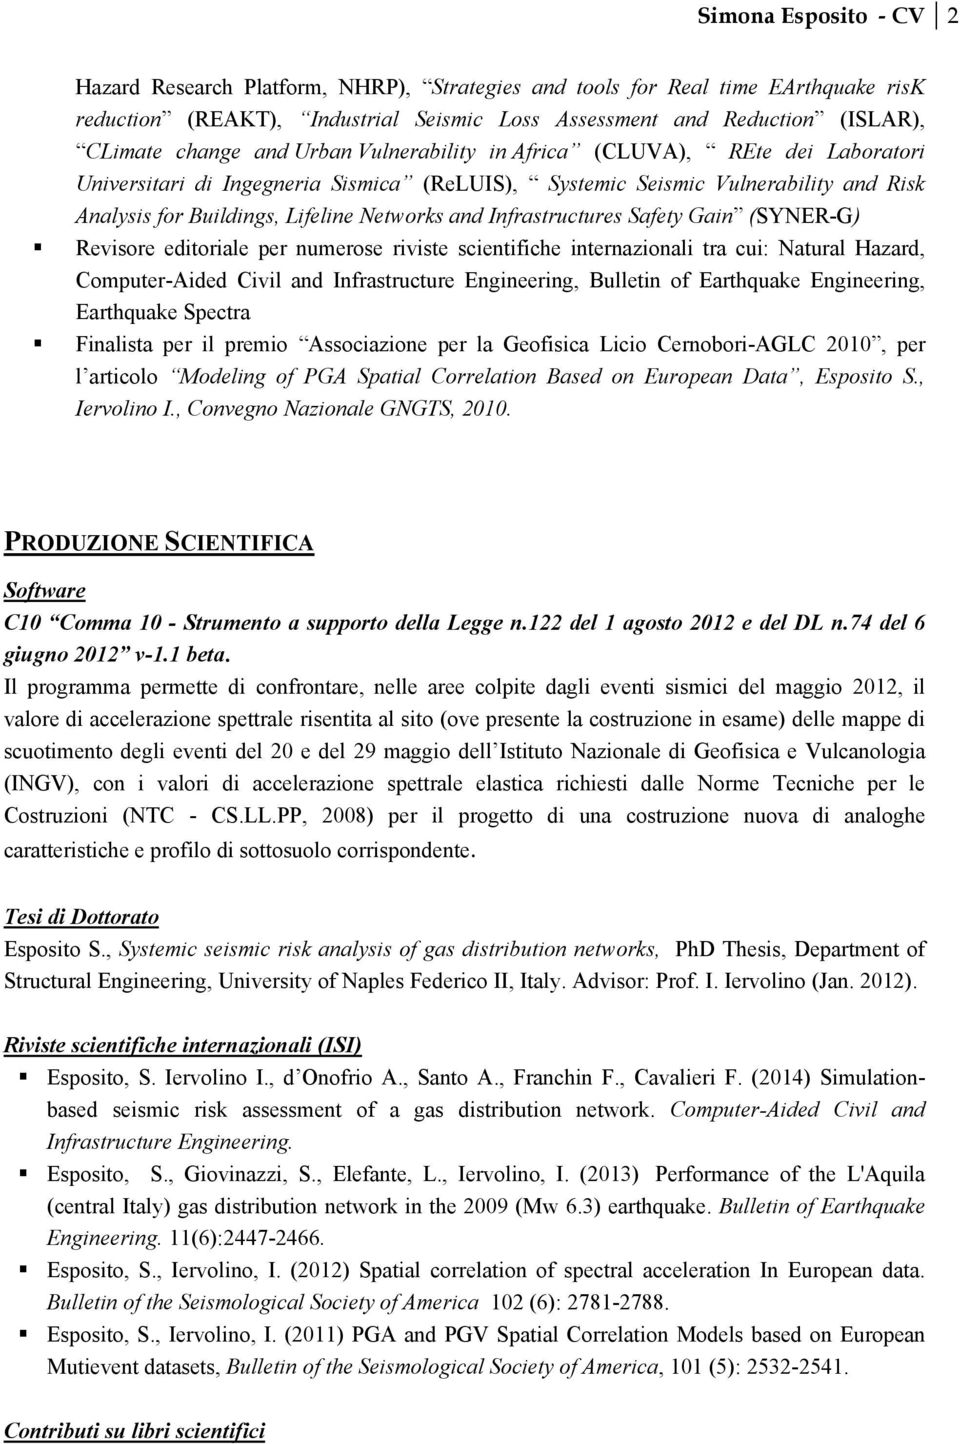 Infrastructures Safety Gain (SYNER-G) Revisore editoriale per numerose riviste scientifiche internazionali tra cui: Natural Hazard, Computer-Aided Civil and Infrastructure Engineering, Bulletin of